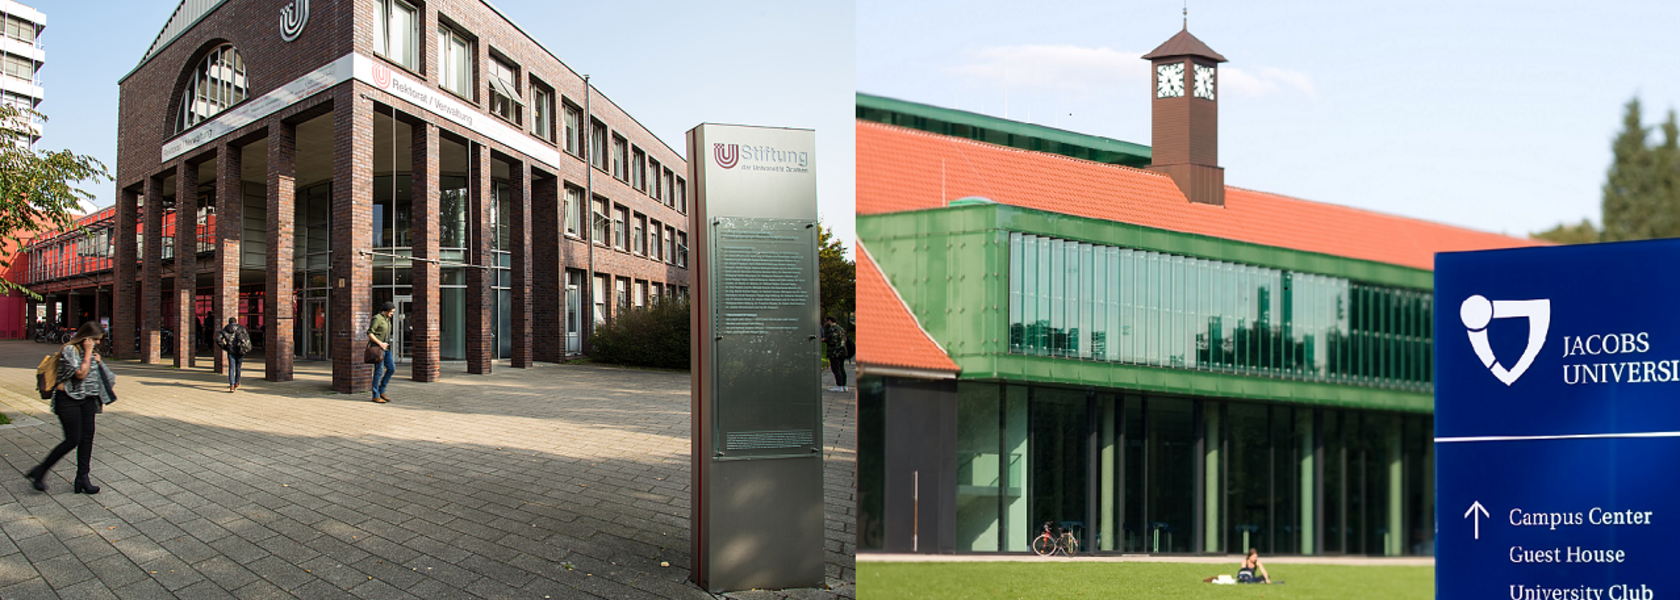 Buildings: University of Bremen and Jacobs University Bremen